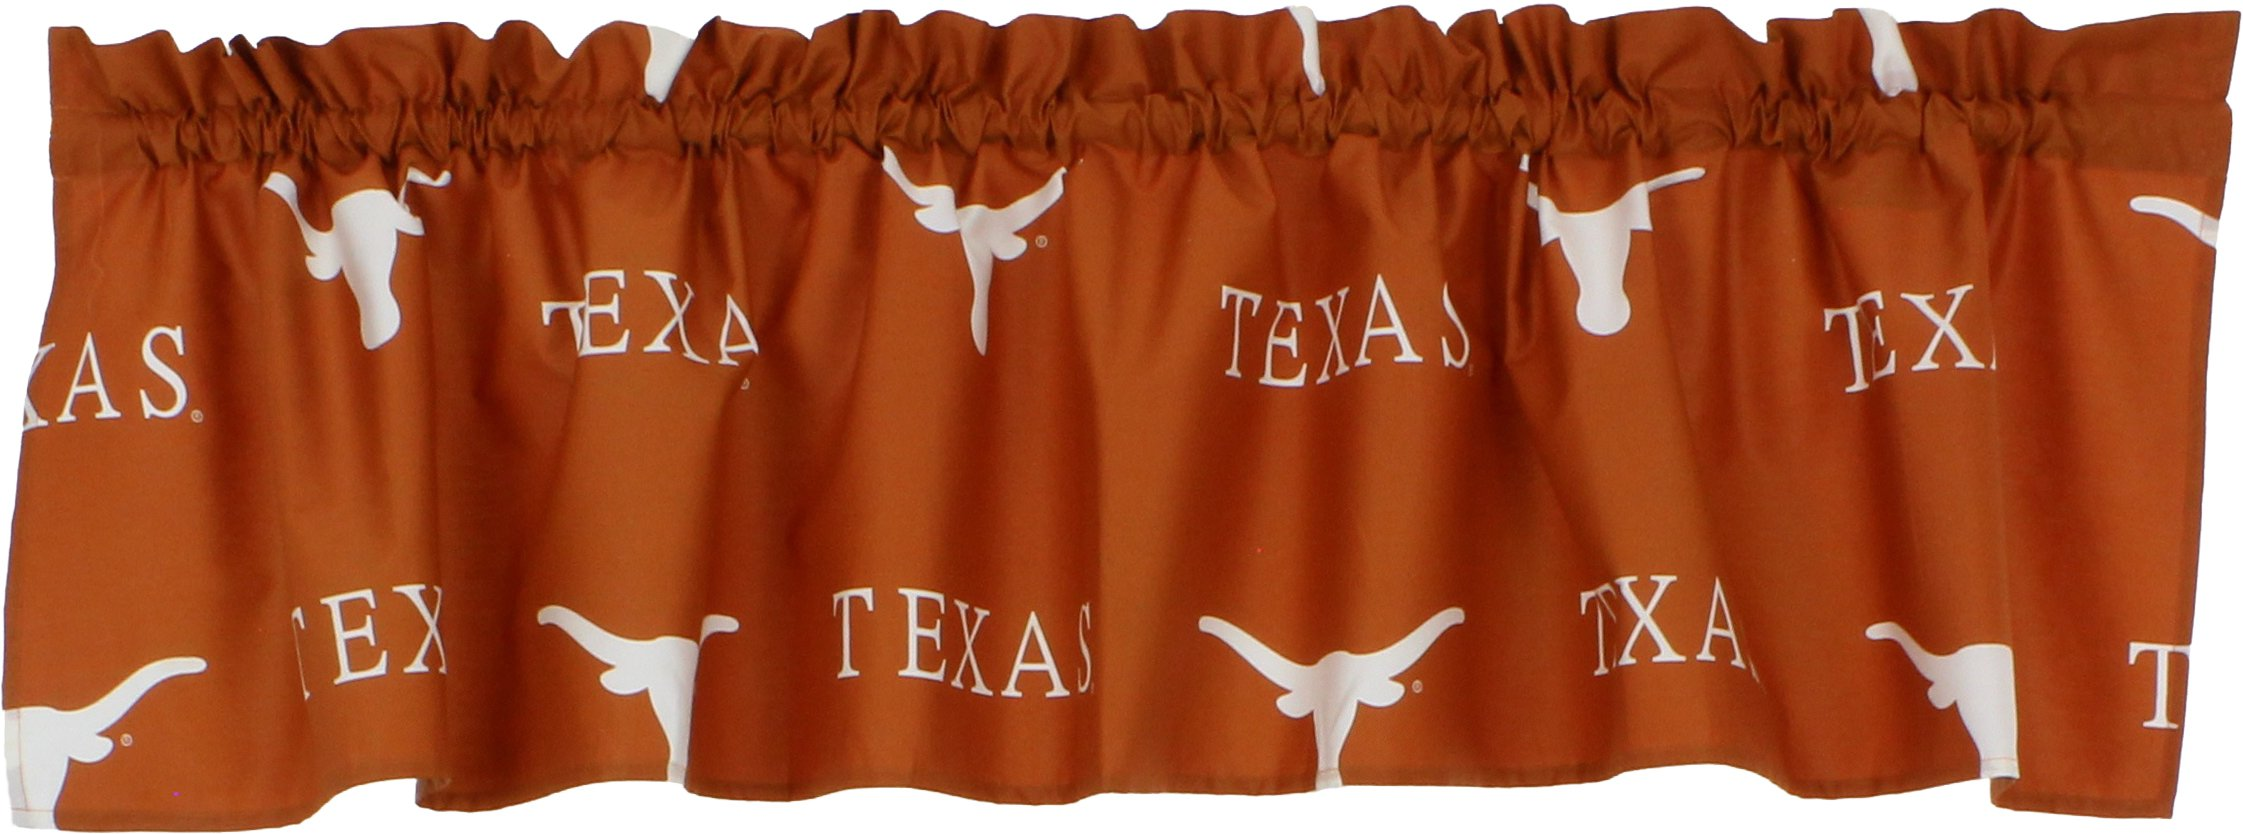 College Covers Texas Longhorns Printed Curtain Valance - 84'' x 15''